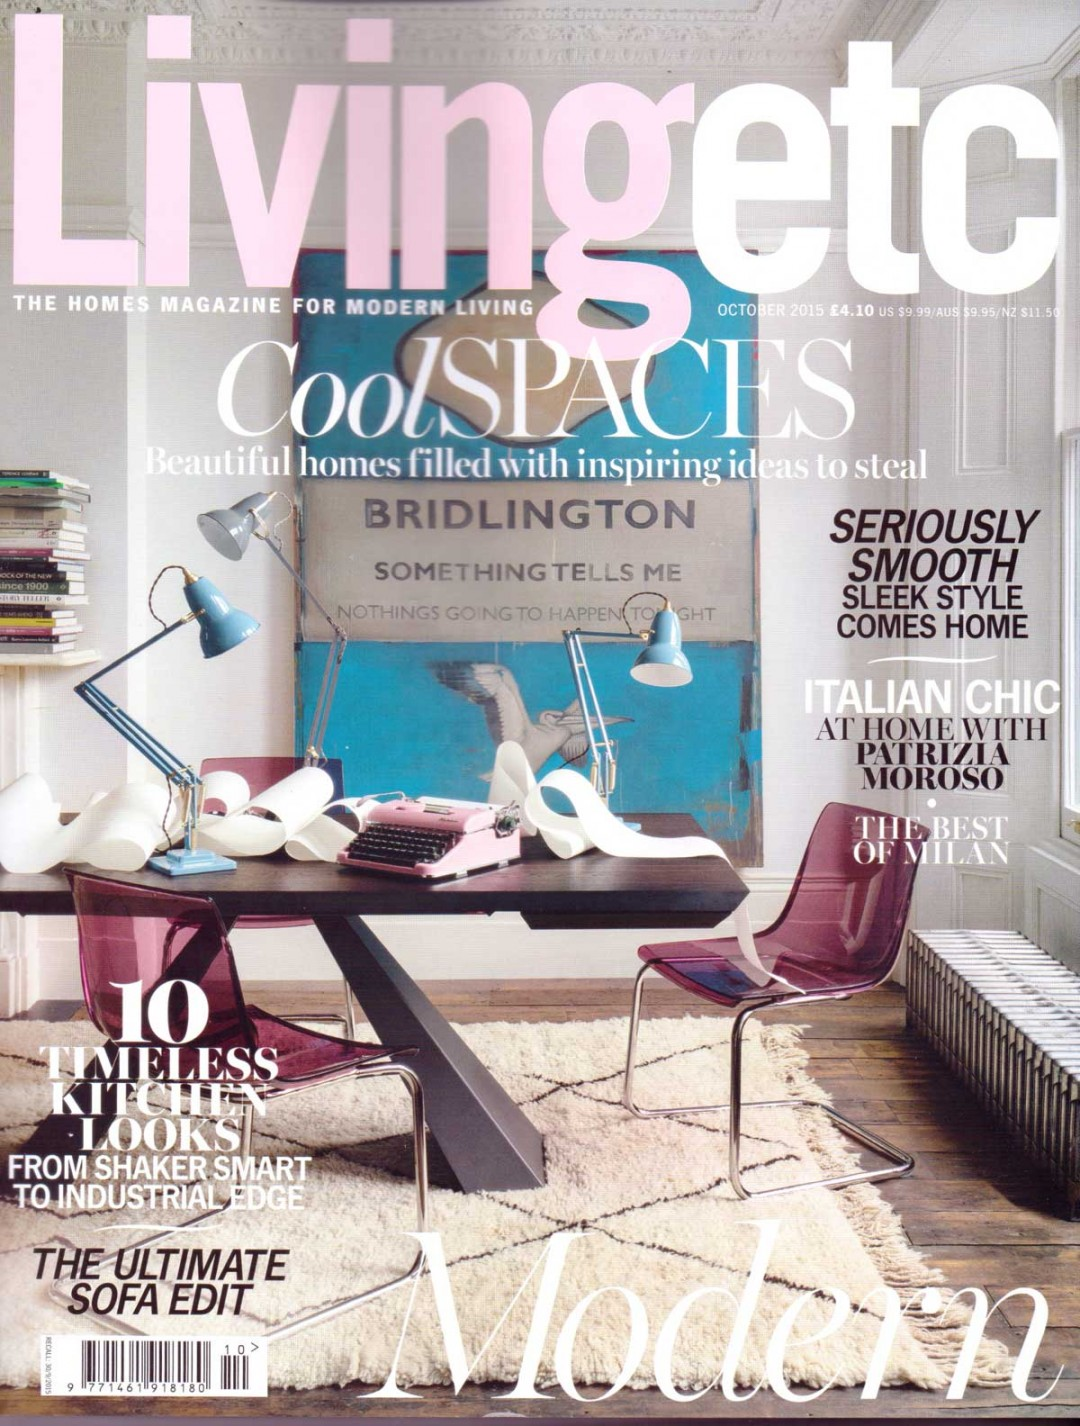 Ben Rousseau Bubble Chair featured in Living ETC Oct 2015